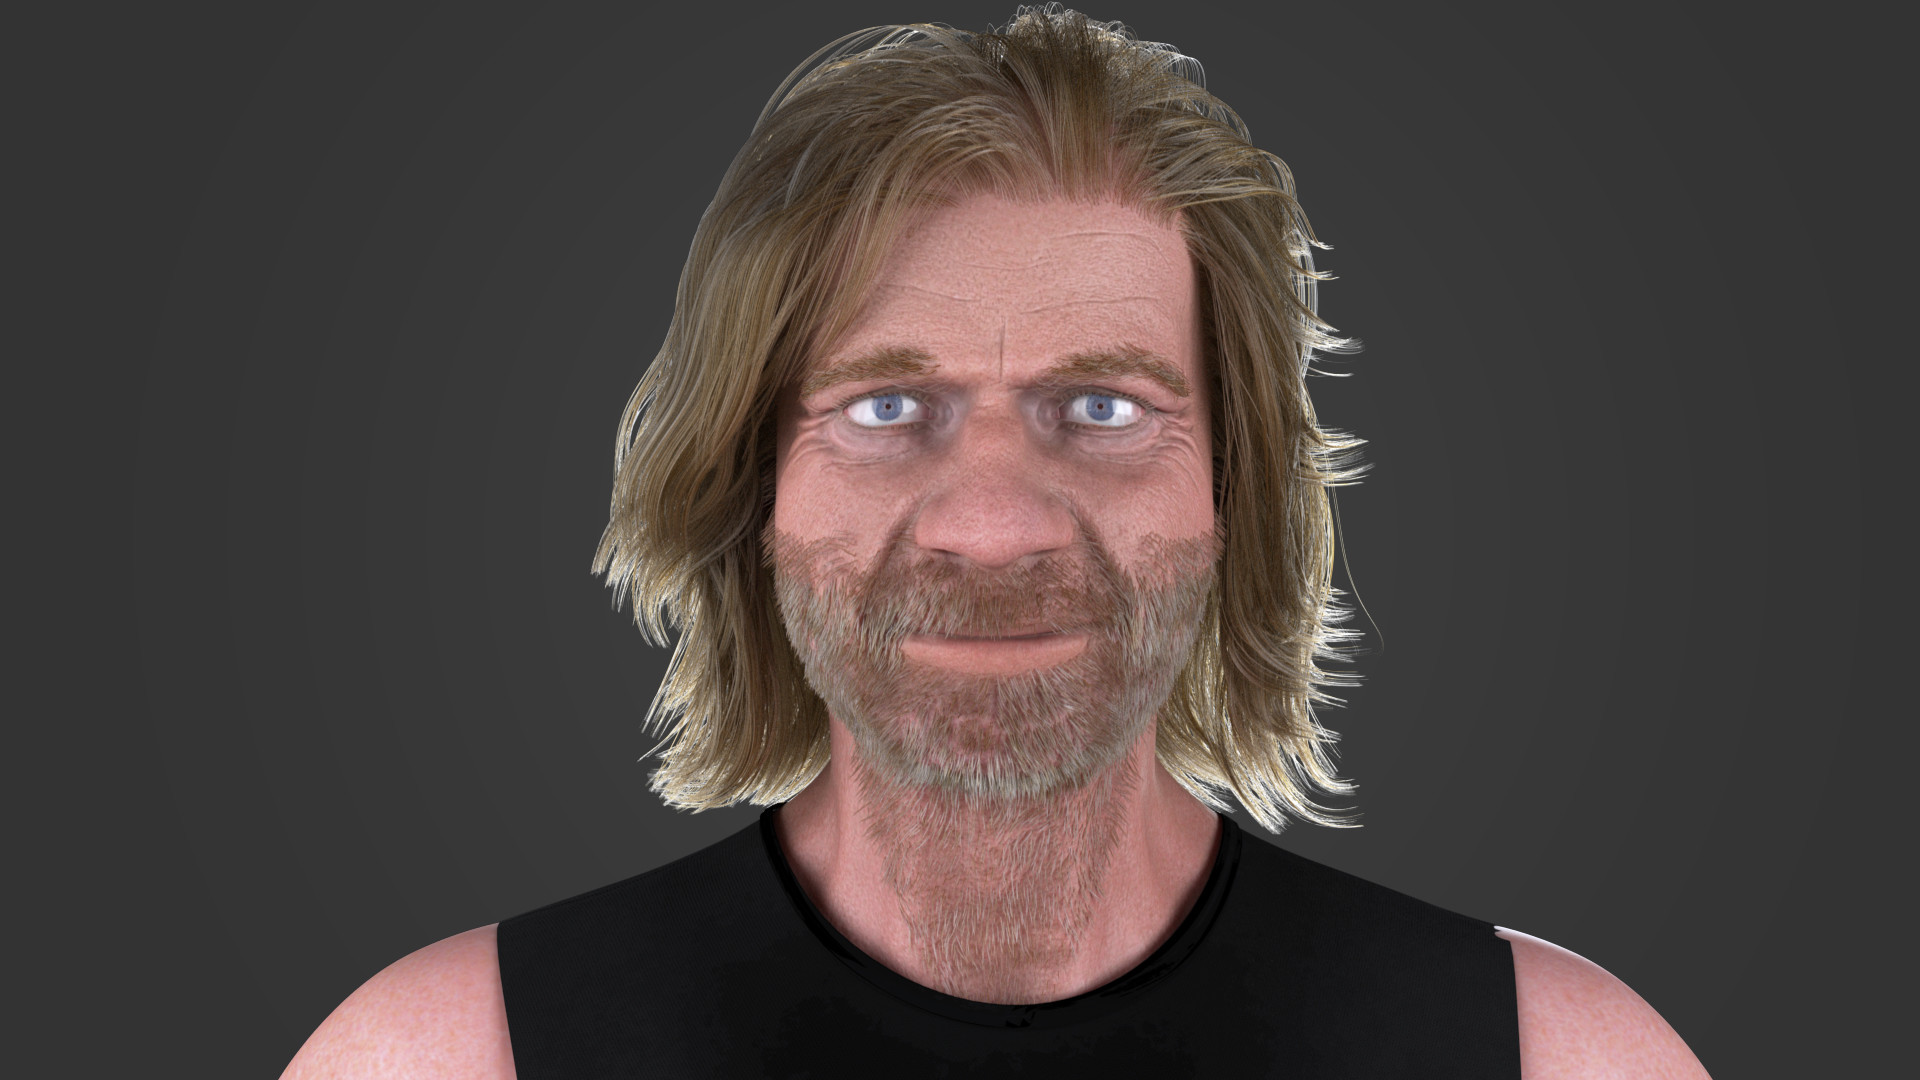 Josh mccann frankgallagher headfront